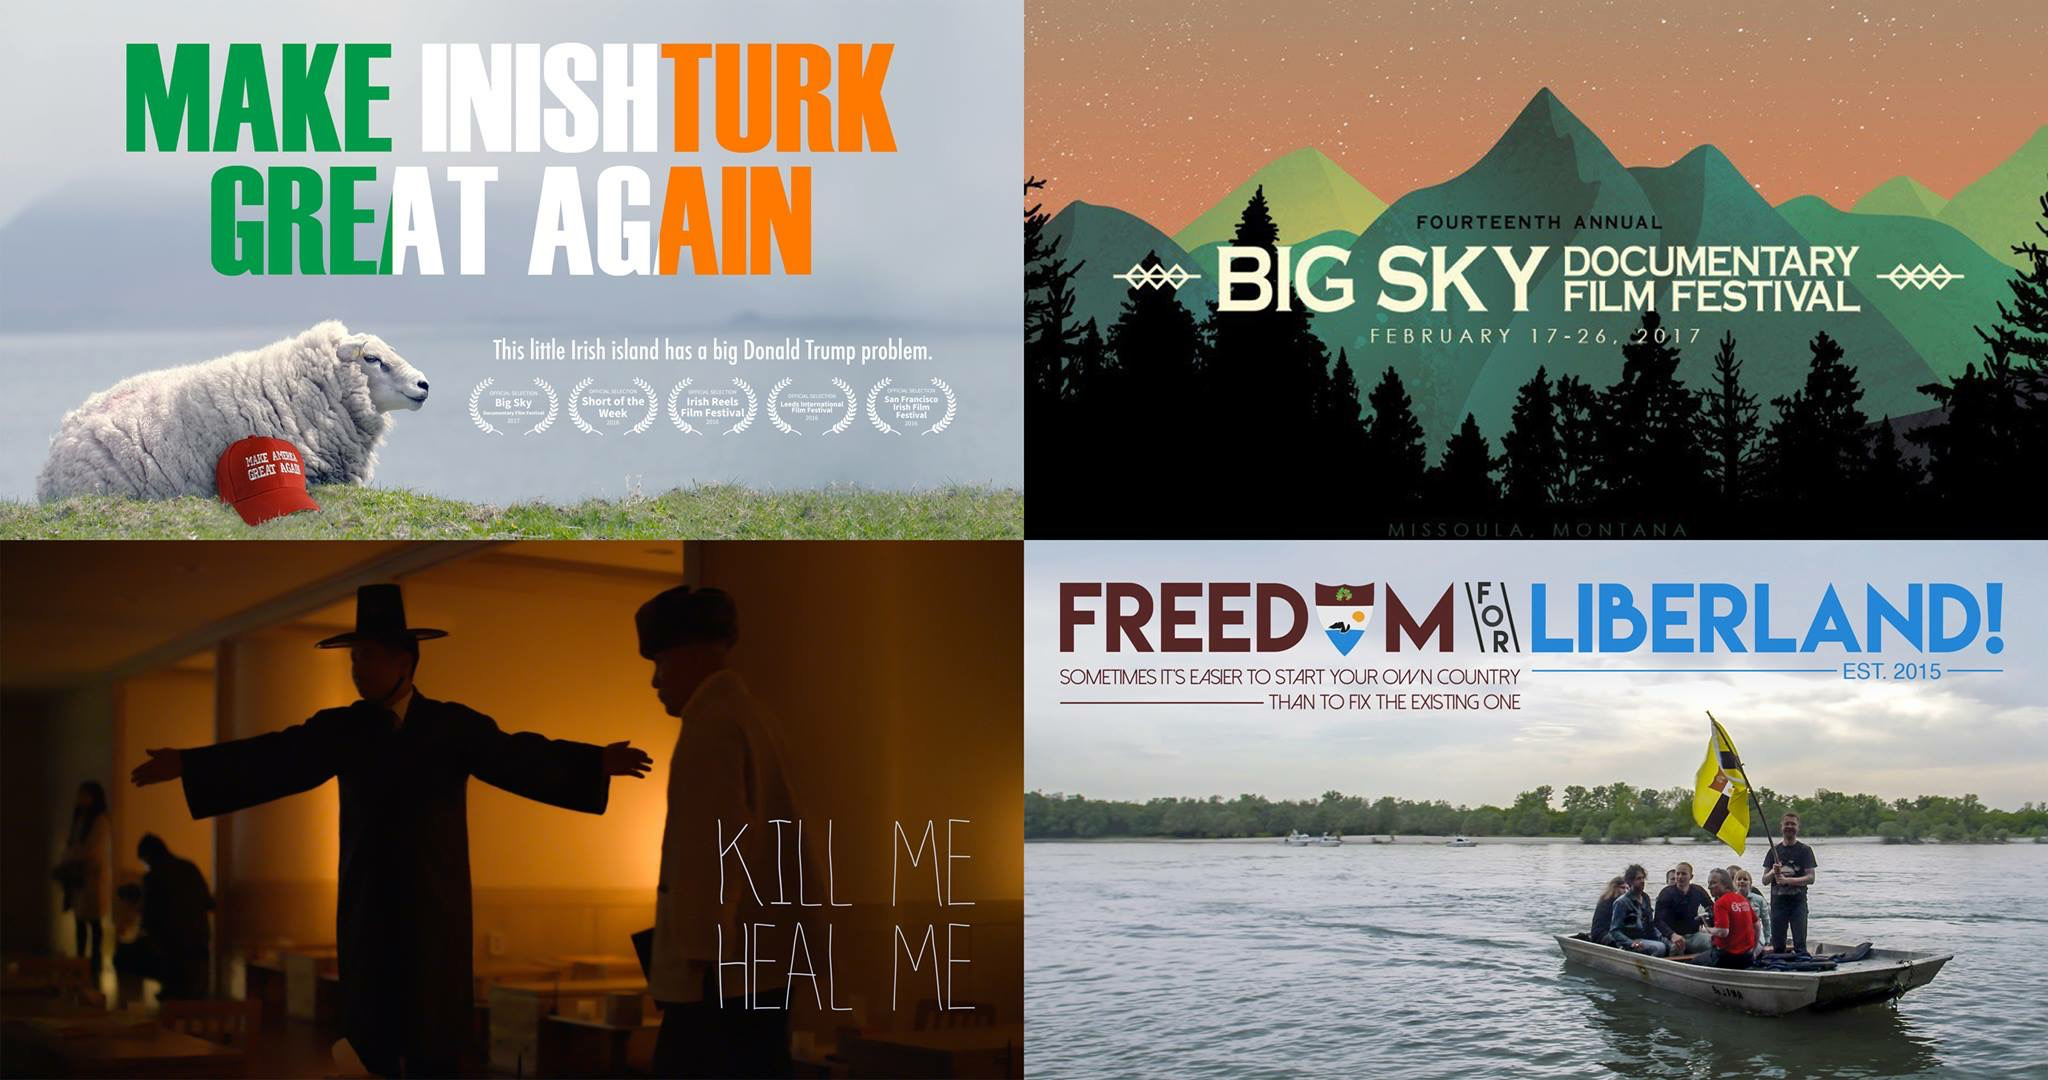 All 3 premiering at Big Sky Doc Film Fest in February!